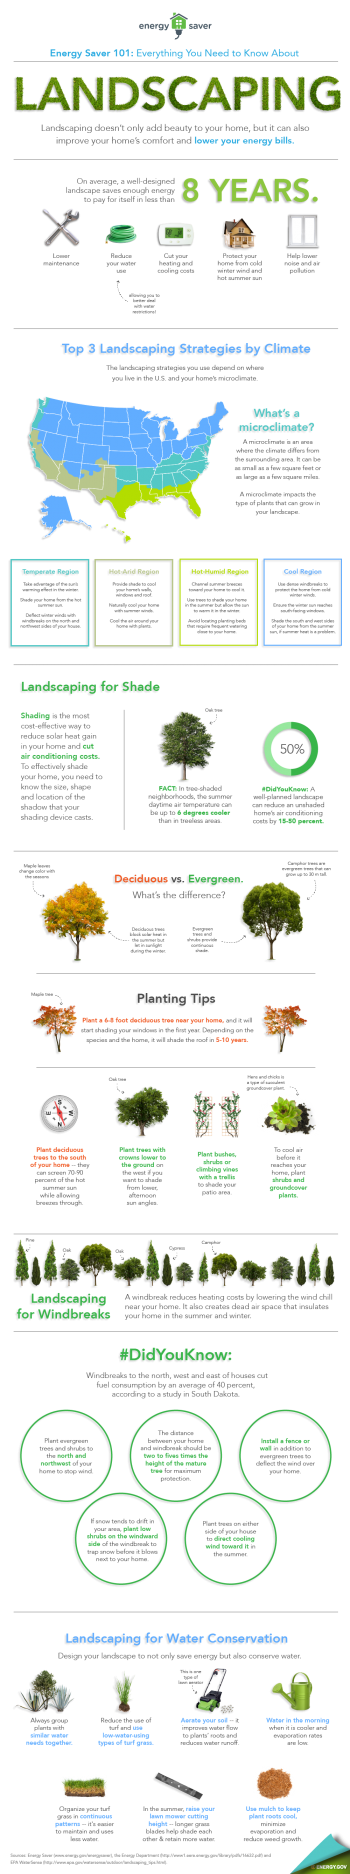 """Our Energy Saver 101 infographic highlights everything you need to know to landscape for energy savings. Download a <a href=""""/node/898361"""">high resolution version</a> of the infographic or individual sections. 